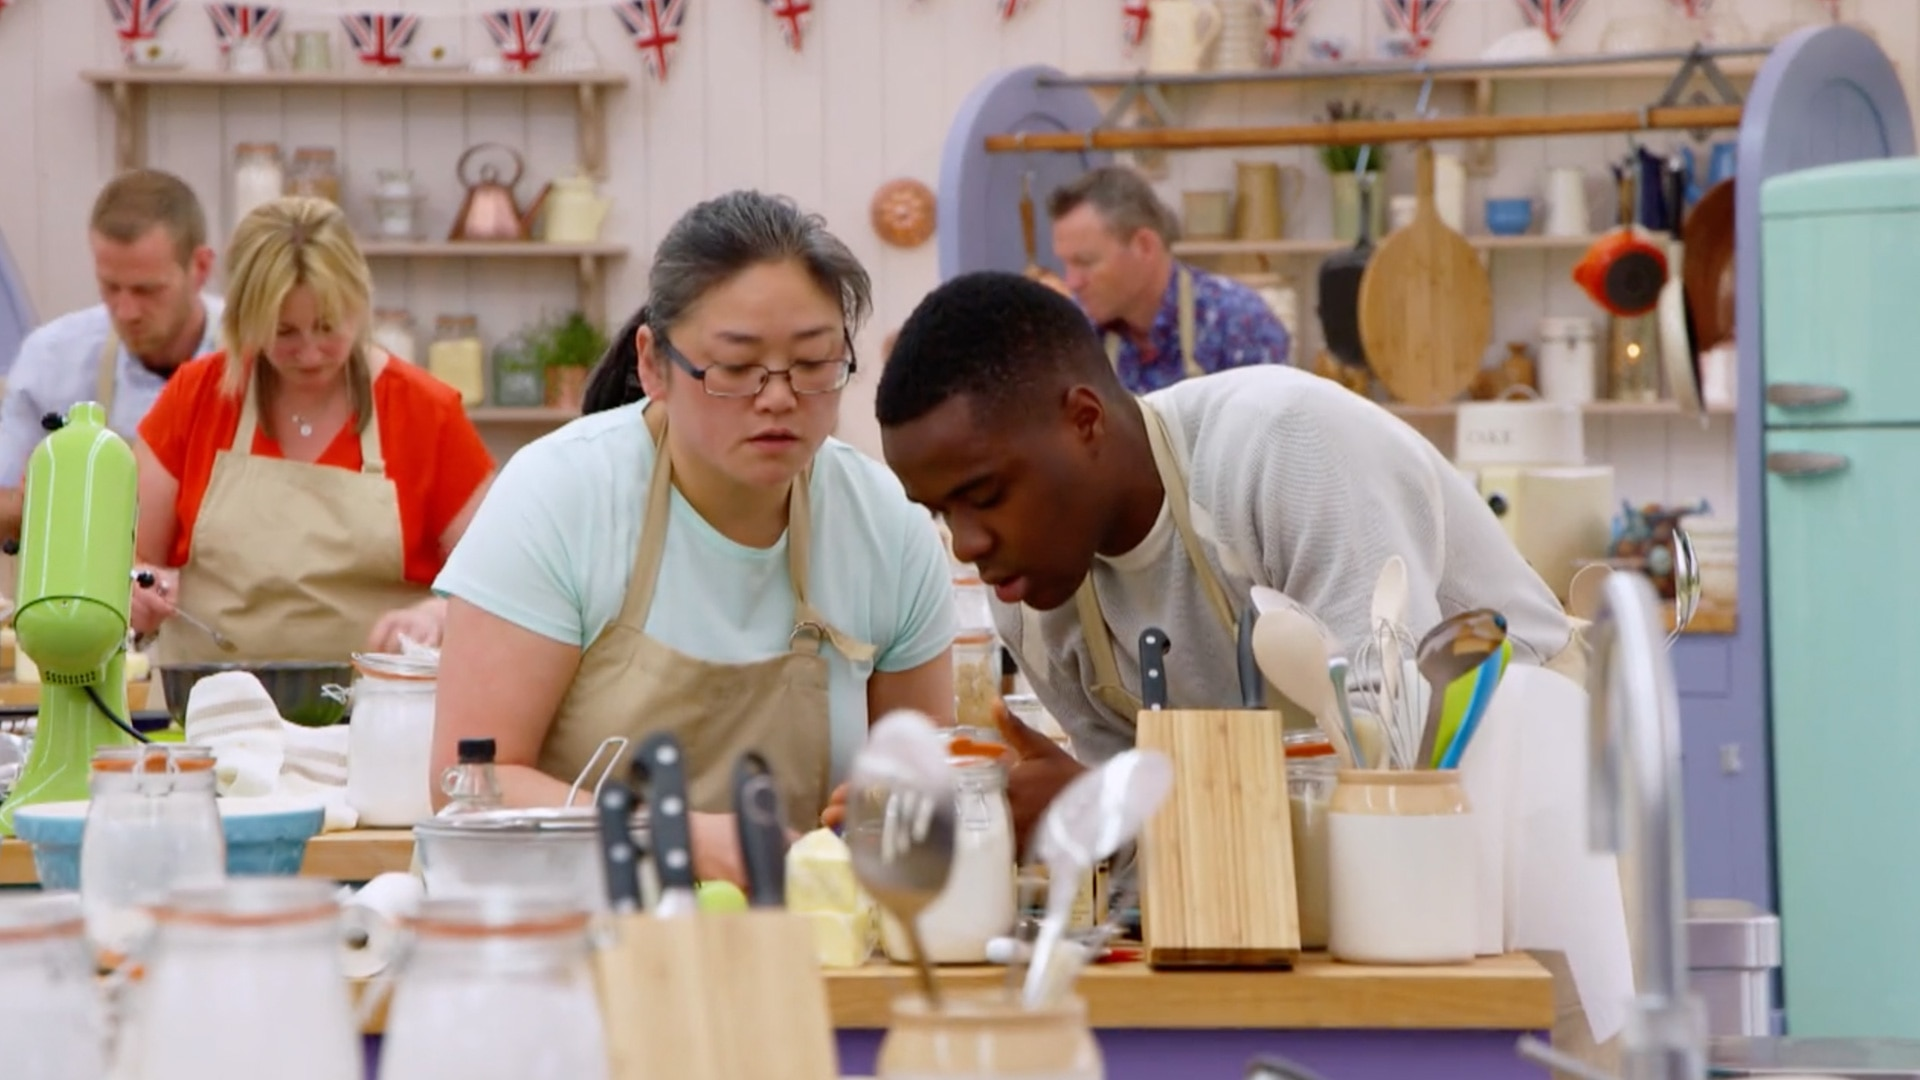 Showy More Episodes British Bake Off All British Bake Off Season 2 Netflix British Bake Off Season 2 Episode 8 nice food Great British Bake Off Season 2